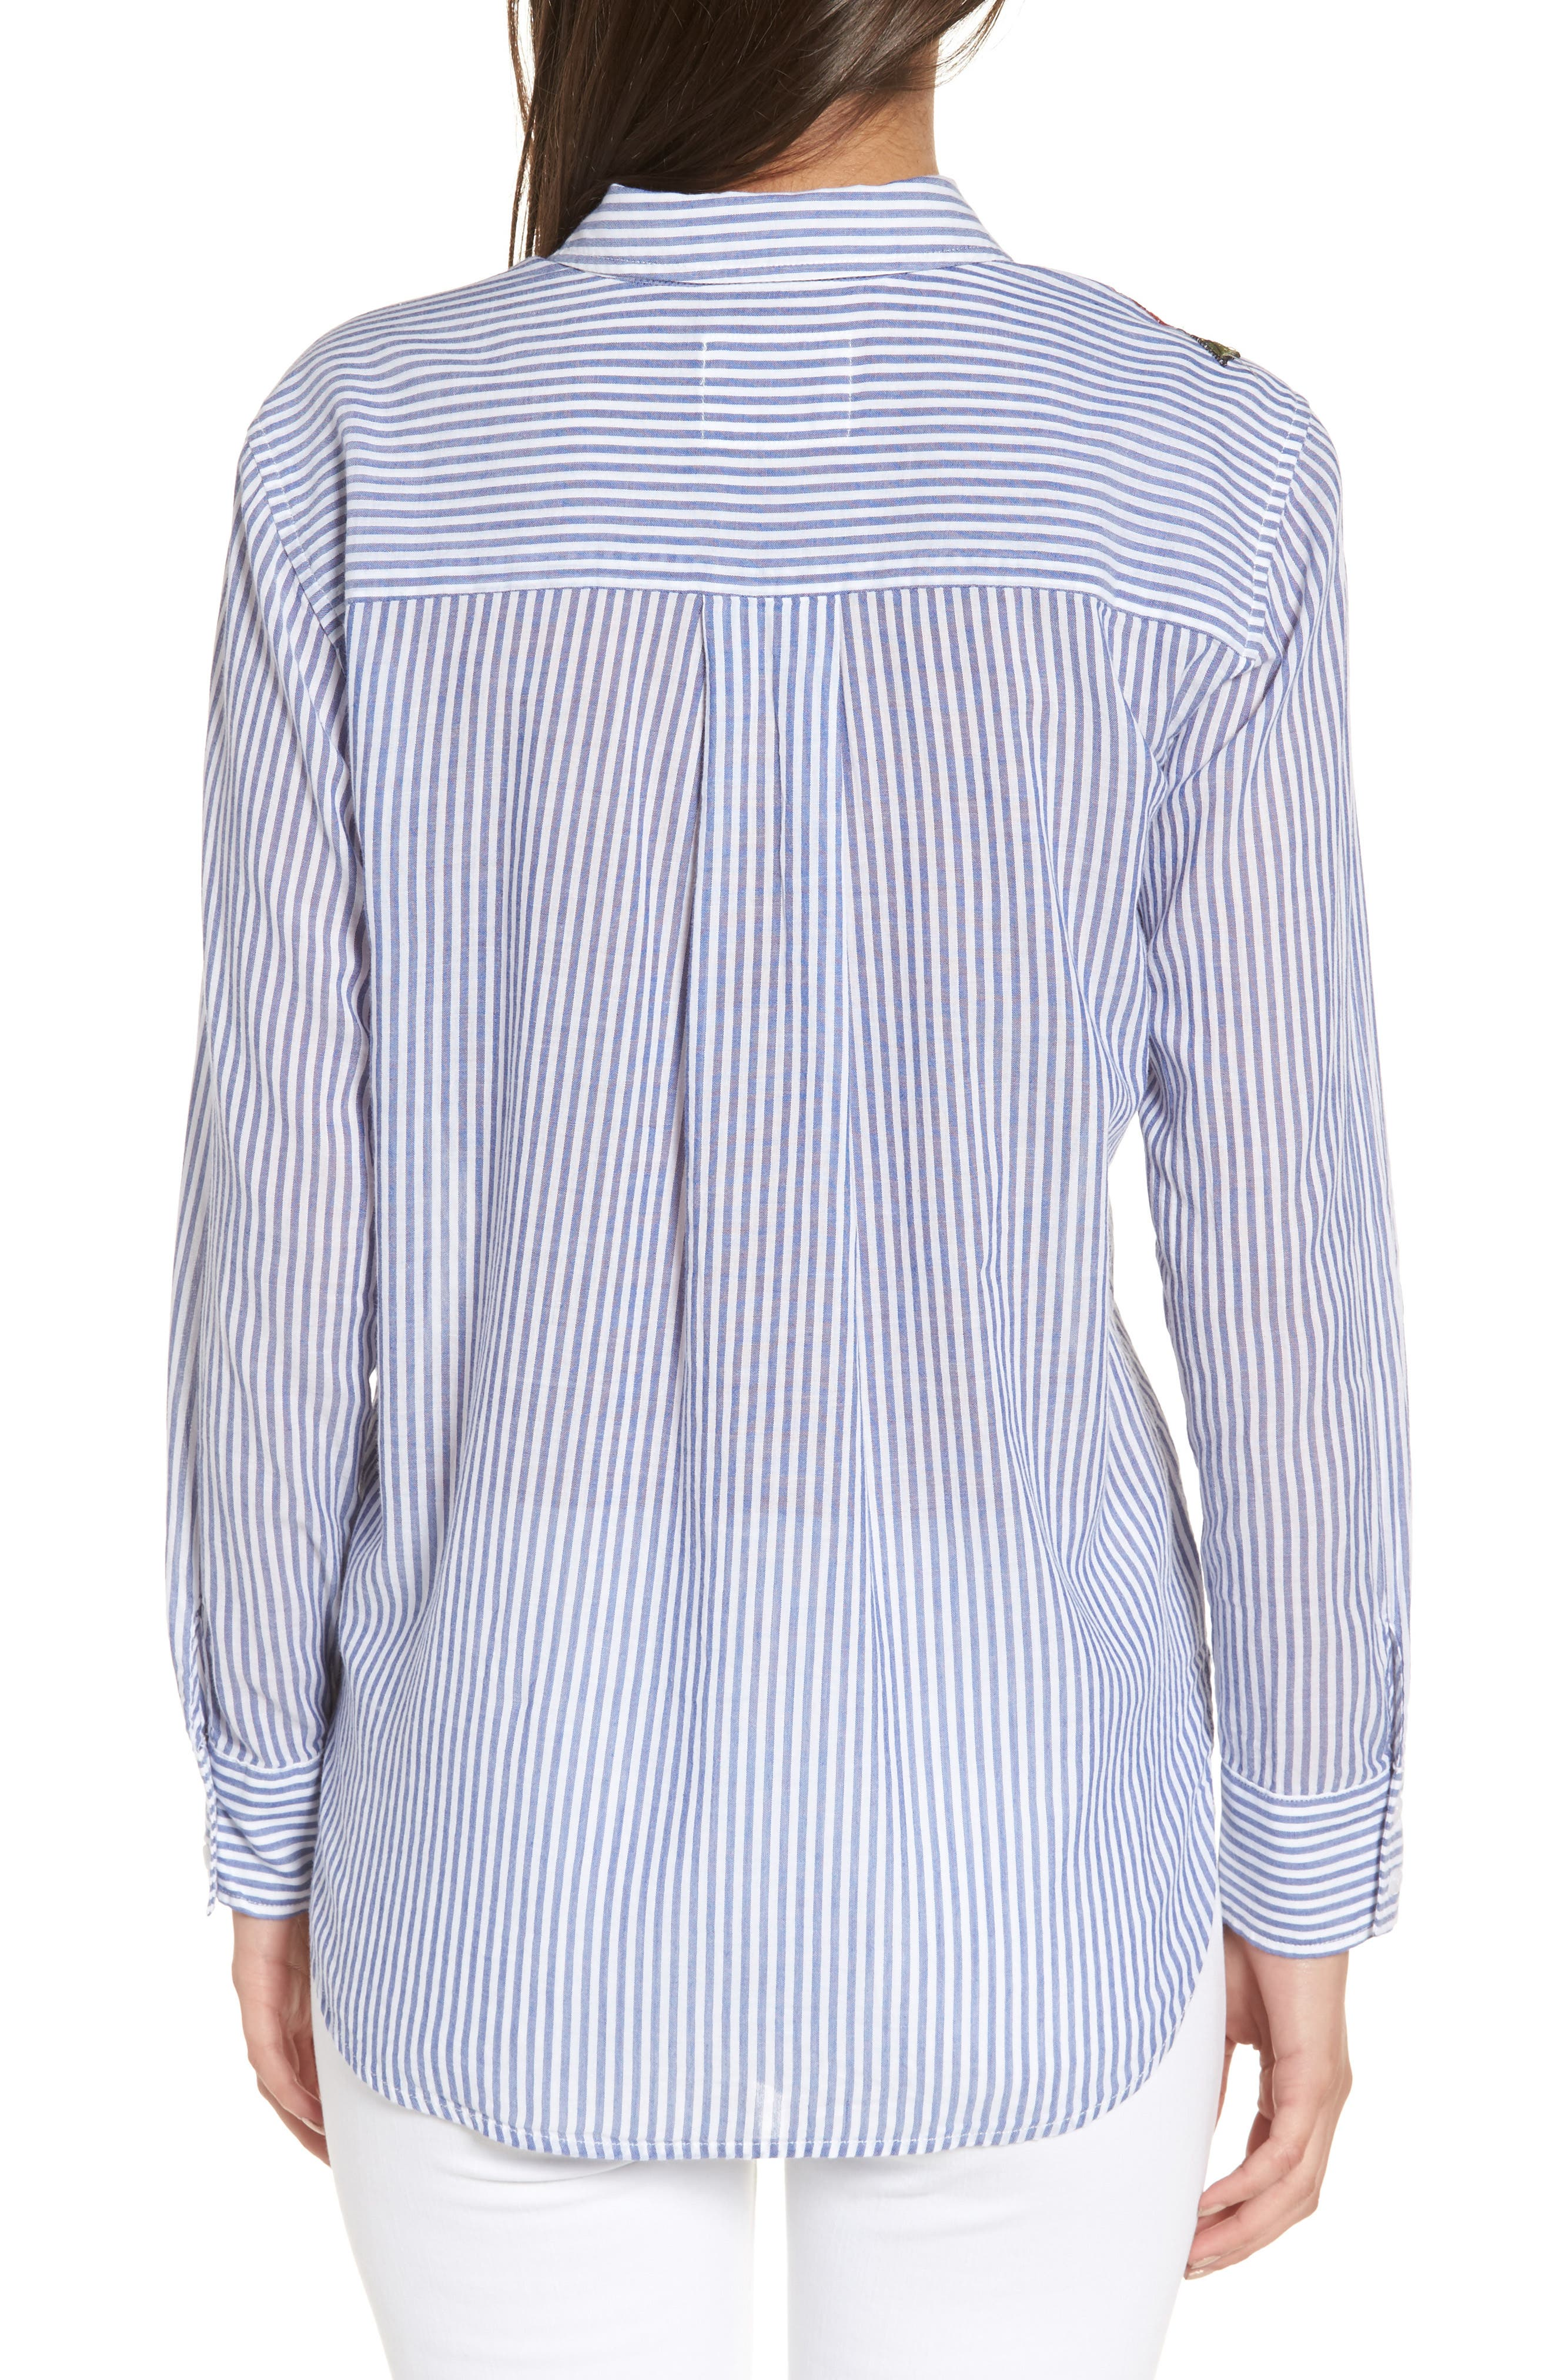 Frances Embroidered Stripe Shirt,                             Alternate thumbnail 2, color,                             425